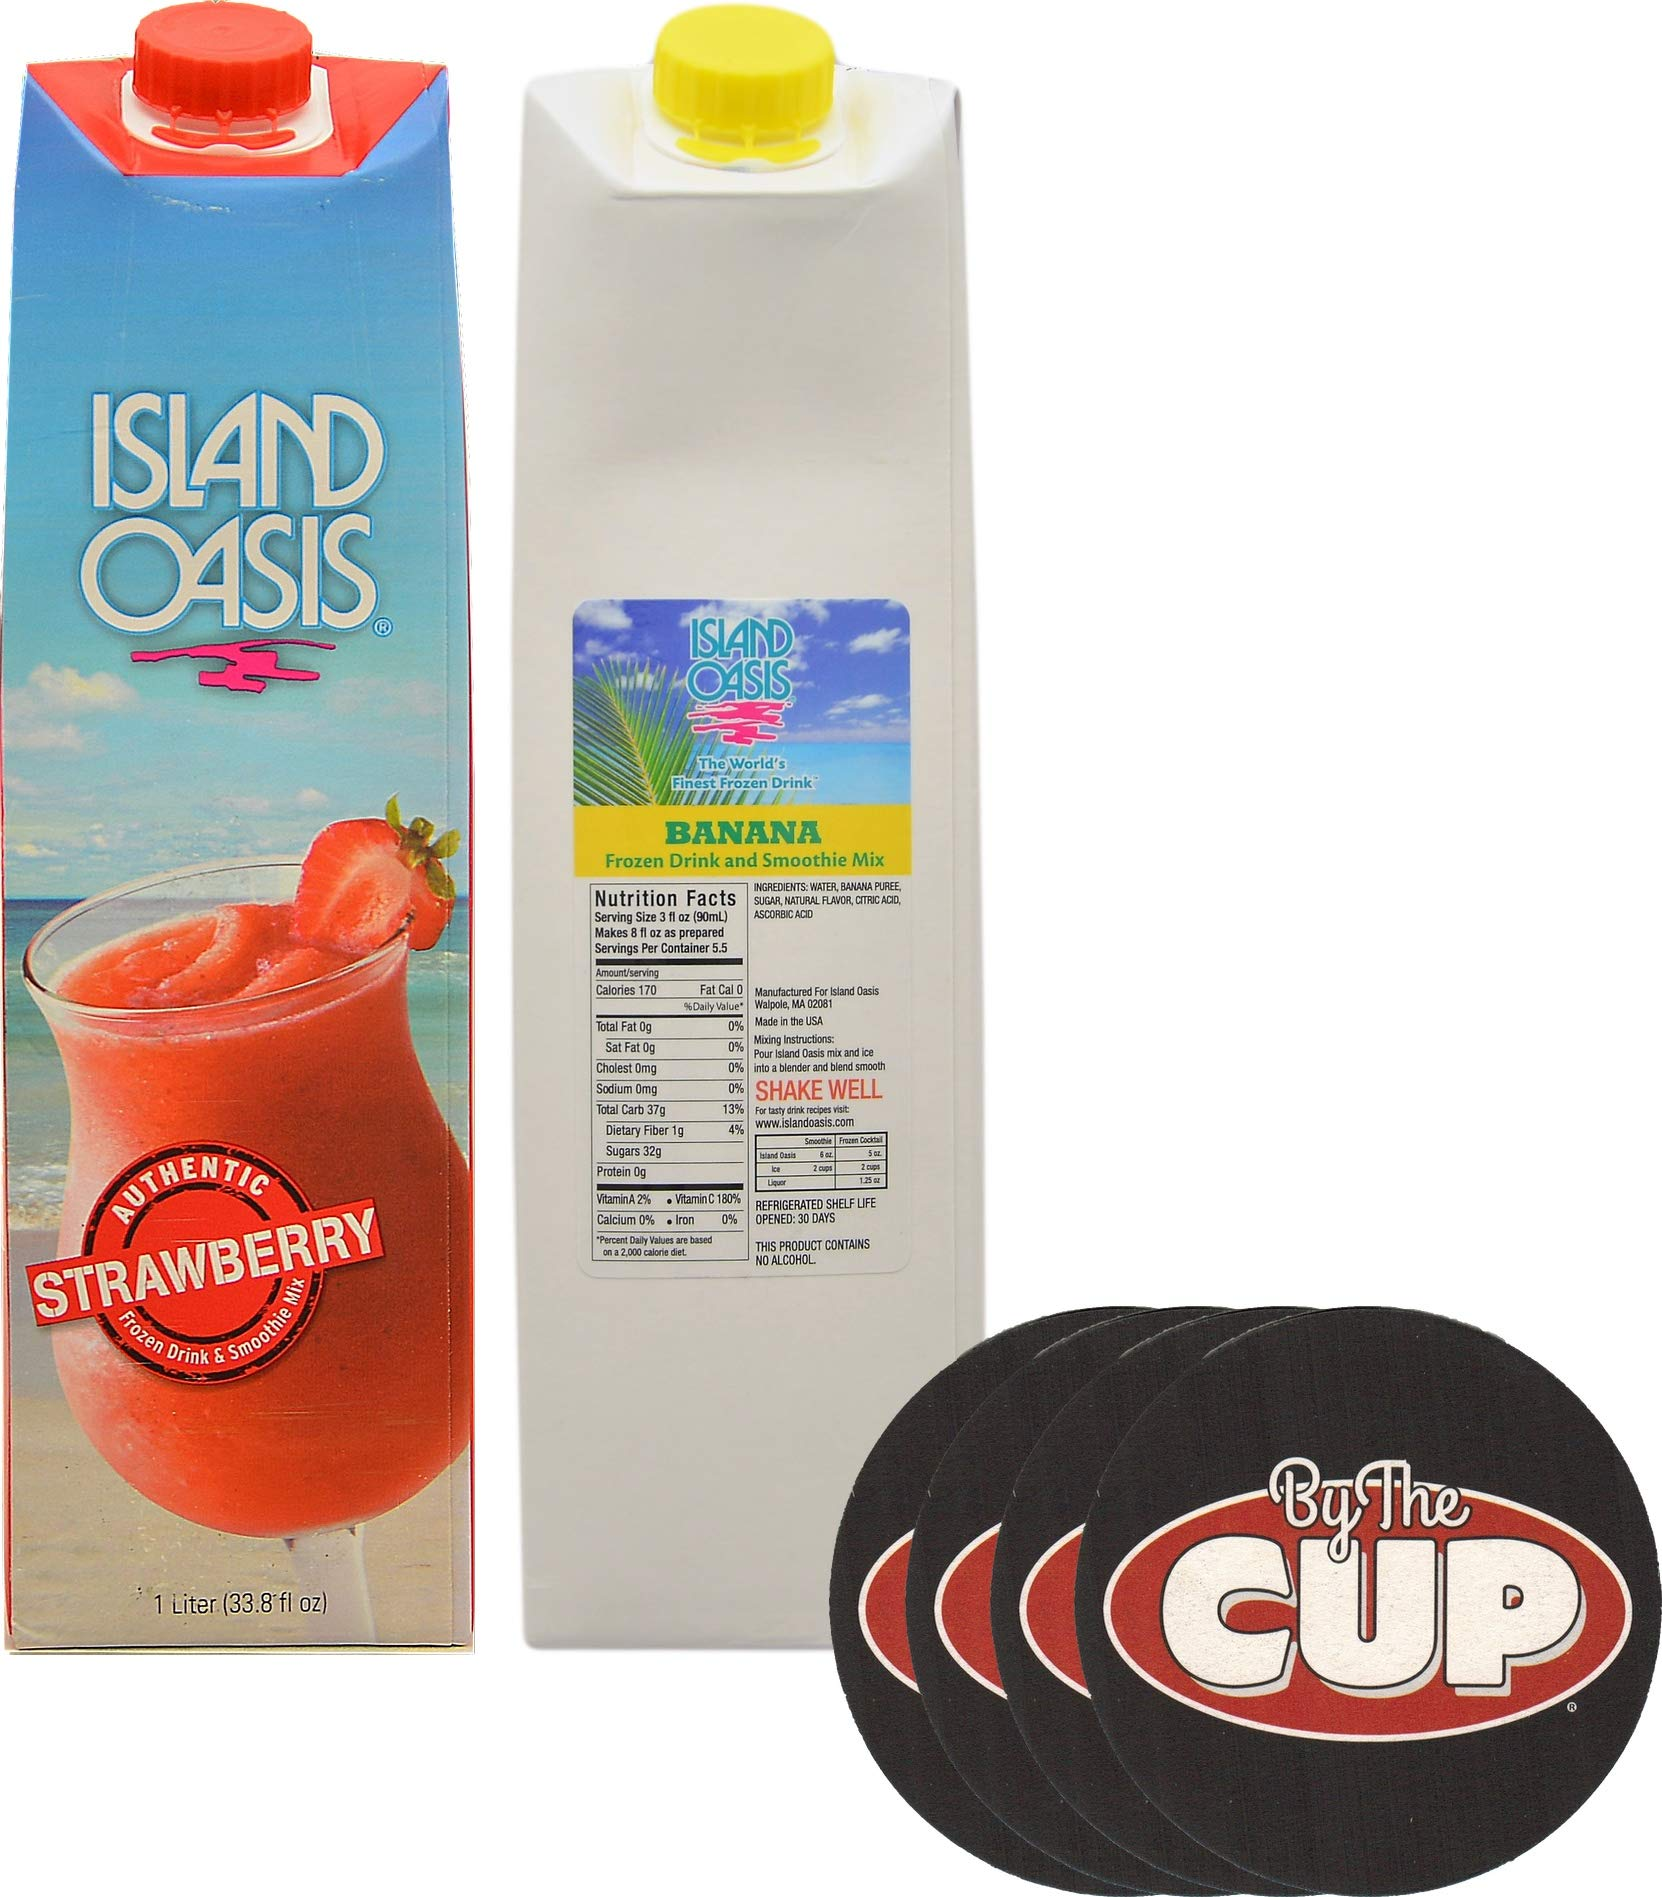 Island Oasis Drink Mix Variety, Strawberry and Banana 1 Liter Each, with Set of By The Cup Coasters